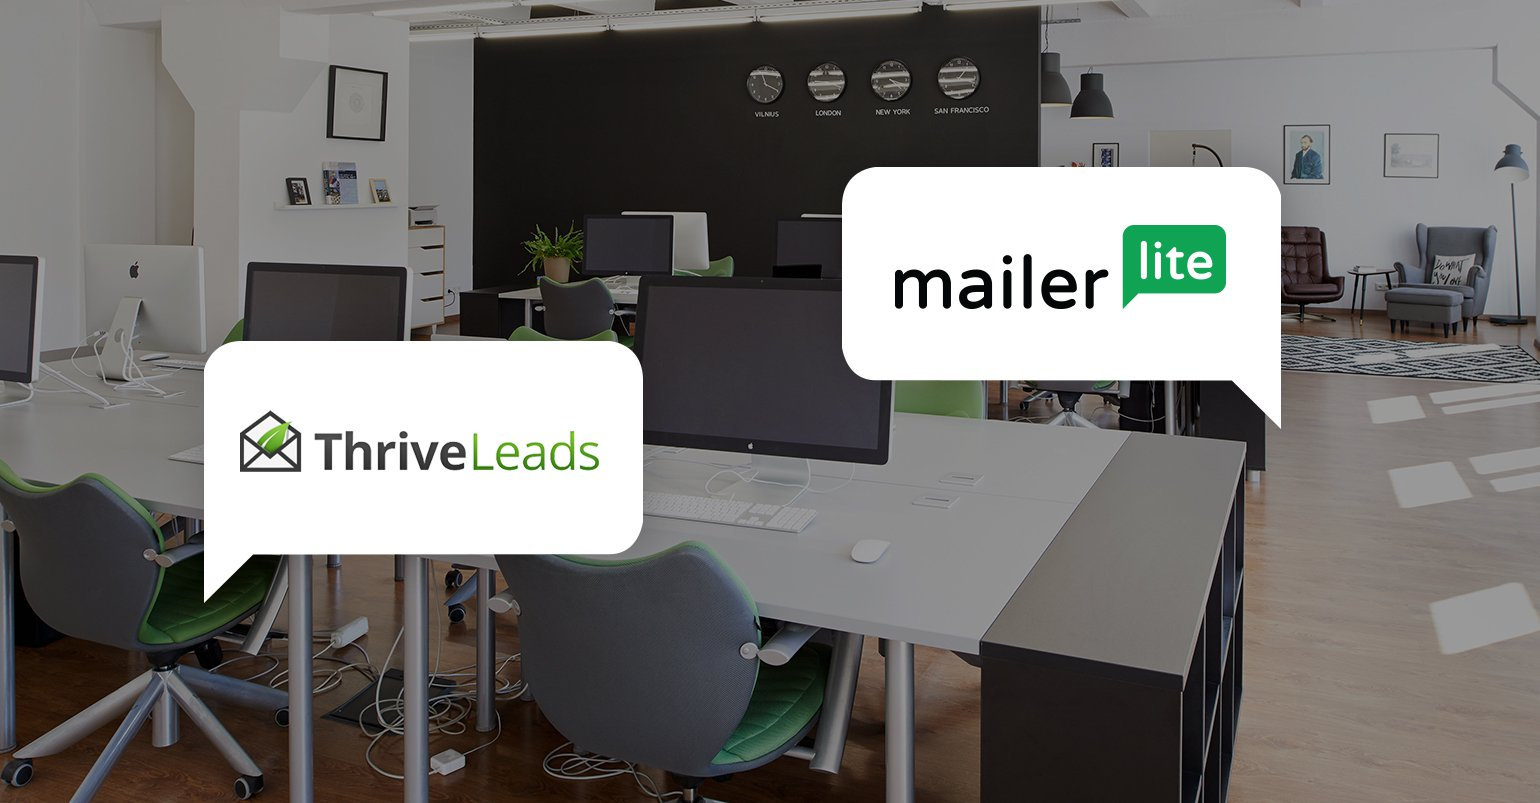 MailerLite integrates with Thrive Leads